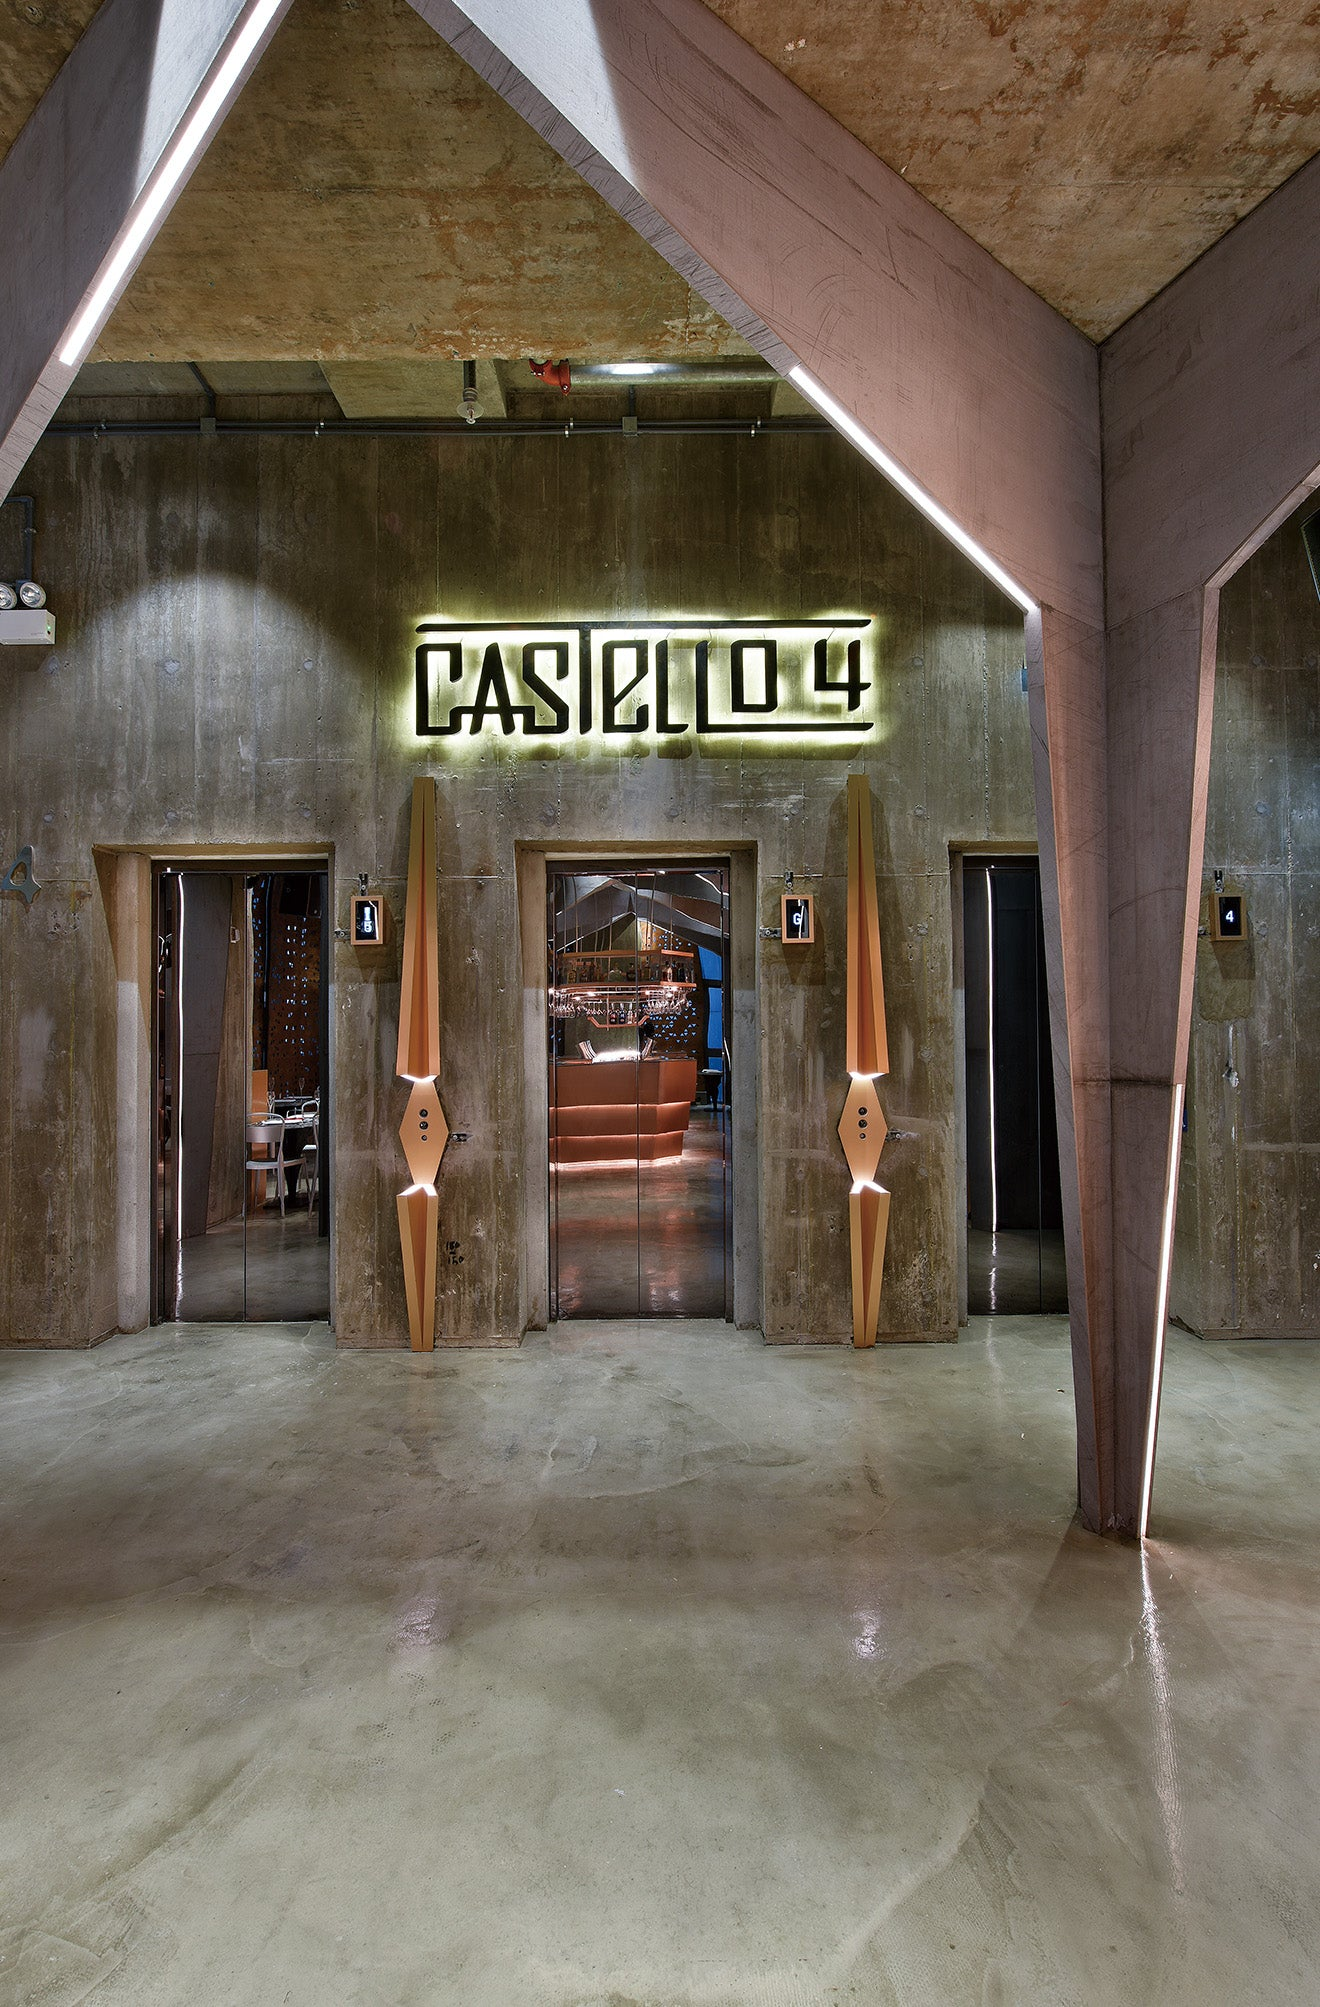 Entrance to Castello 4 luxury restaurant and bar